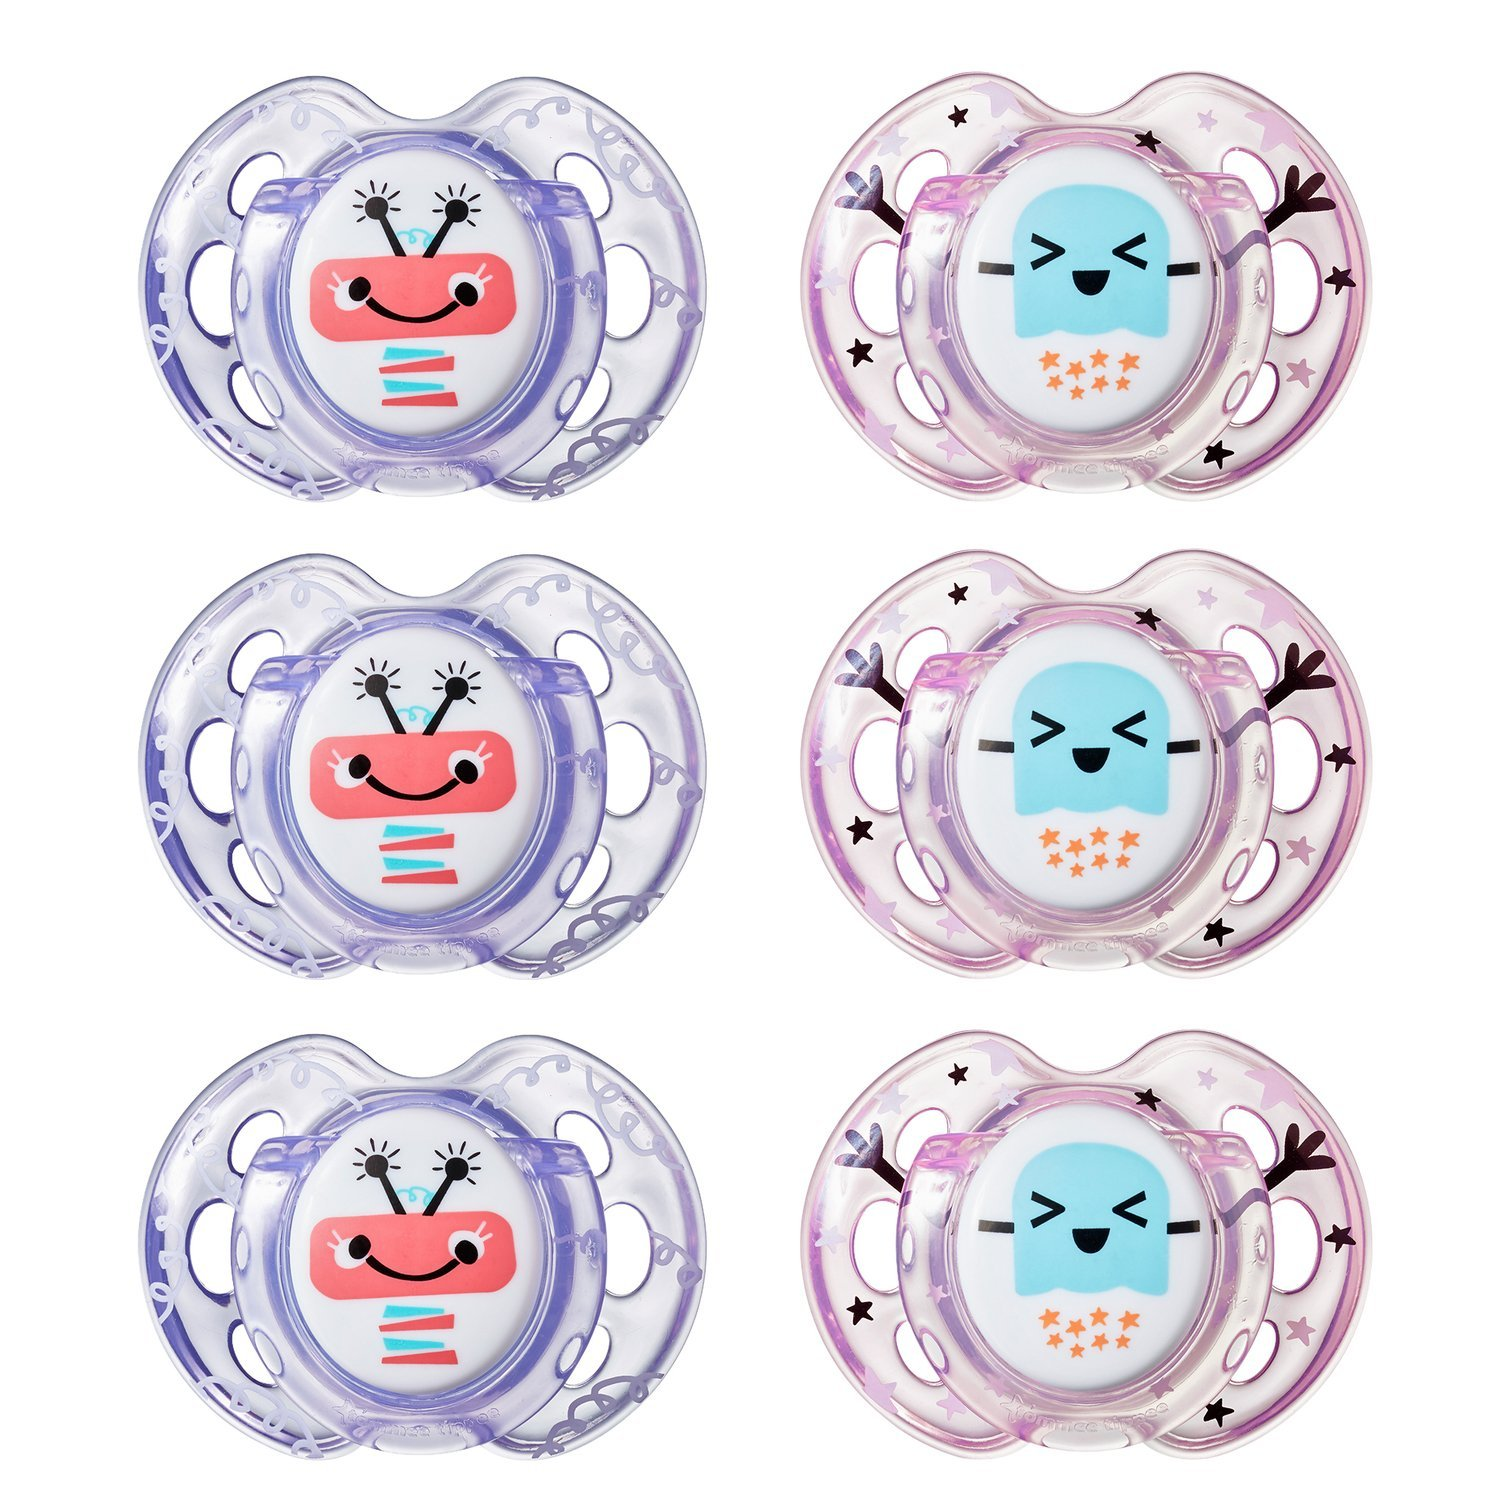 Tommee Tippee Closer to Nature Fun Style Orthodontic Baby Soothie Pacifier, 0-6 Months - Girl, 6 Pack